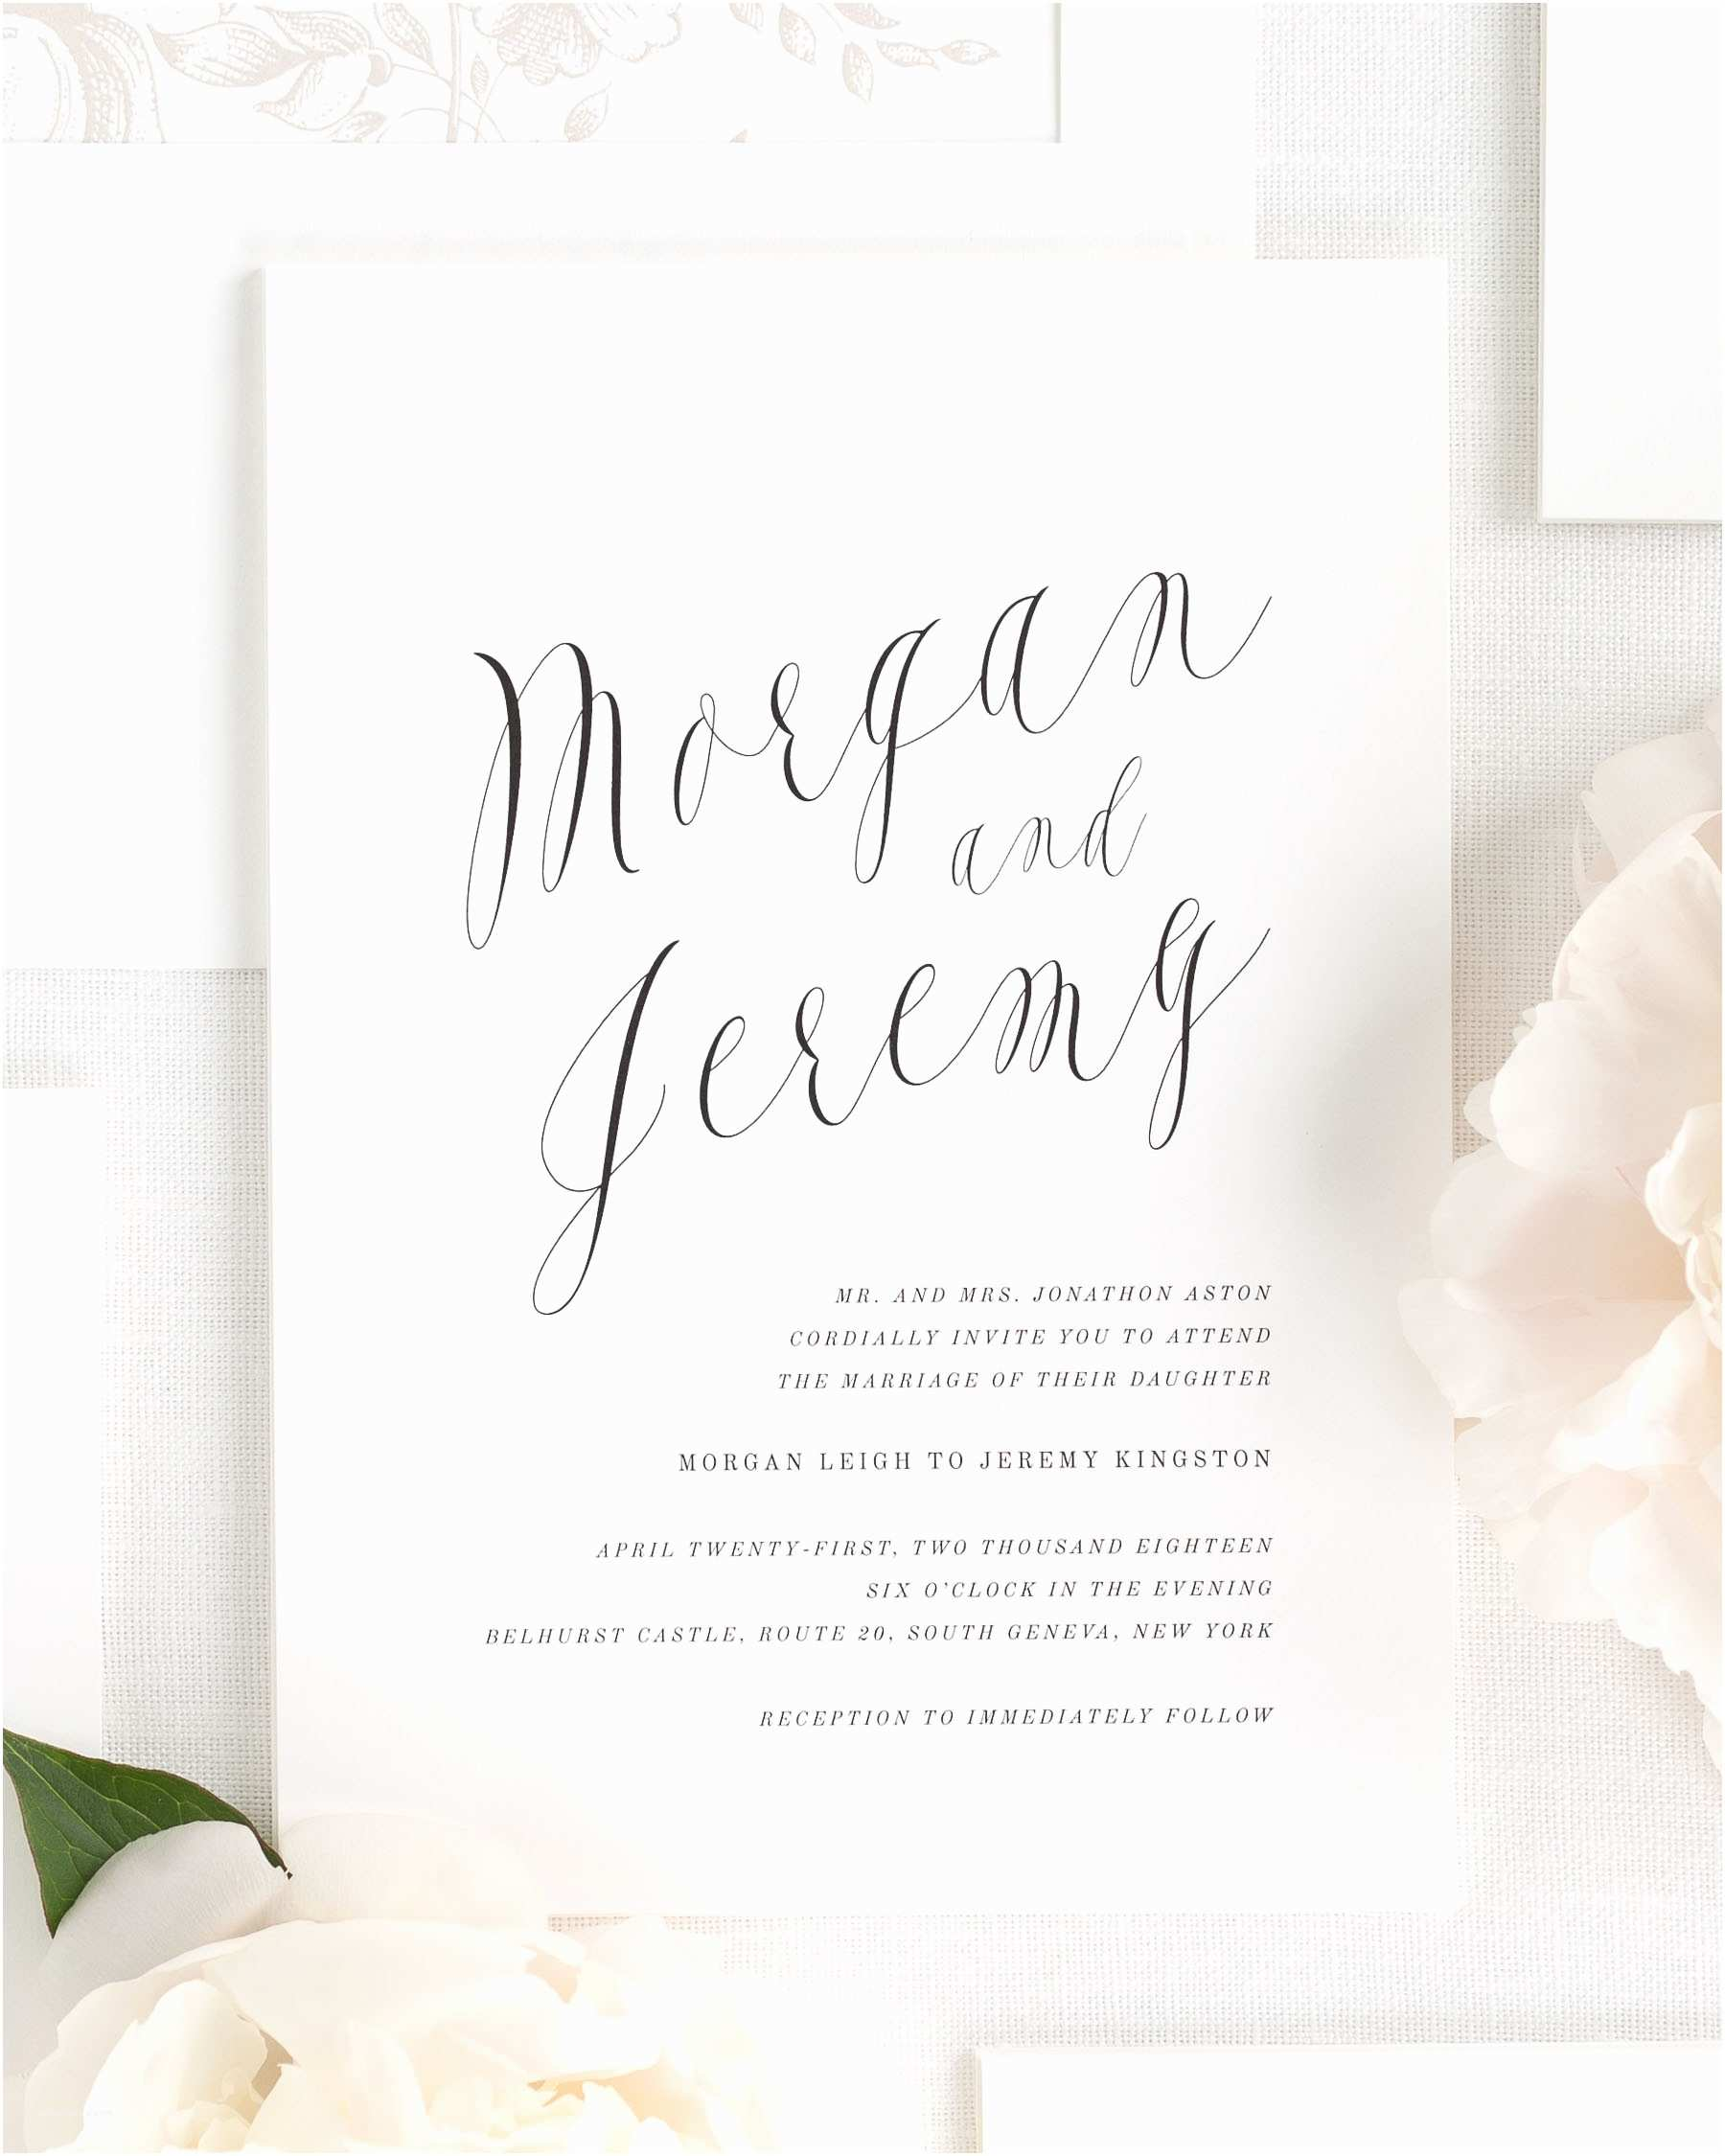 Calligraphy for Wedding Invitations Ethereal Calligraphy Wedding Invitations Wedding